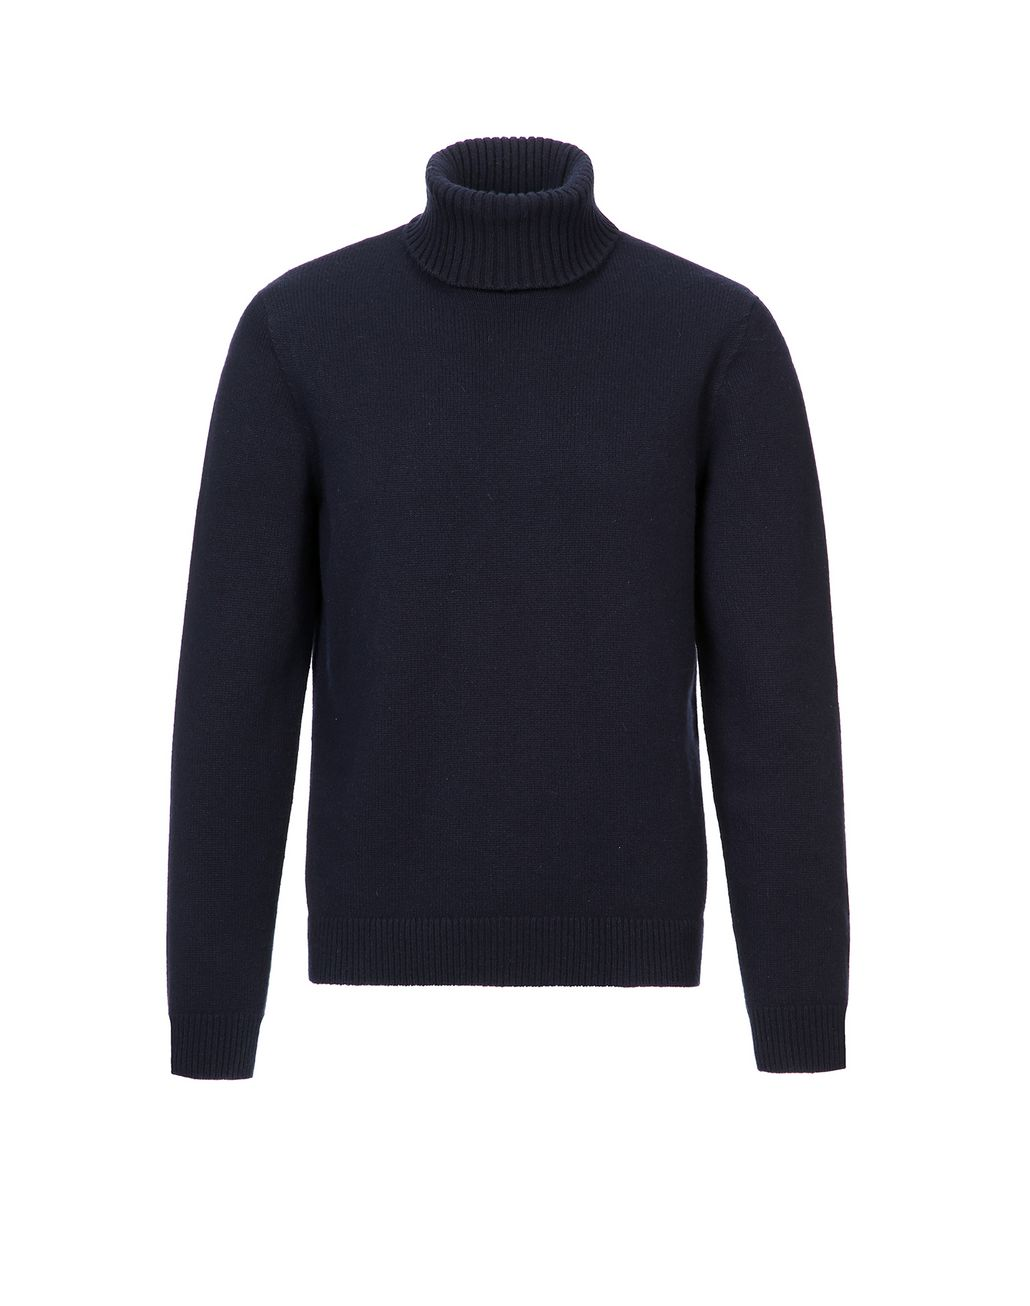 BRIONI Navy Blue Turtleneck Sweater Knitwear Man f